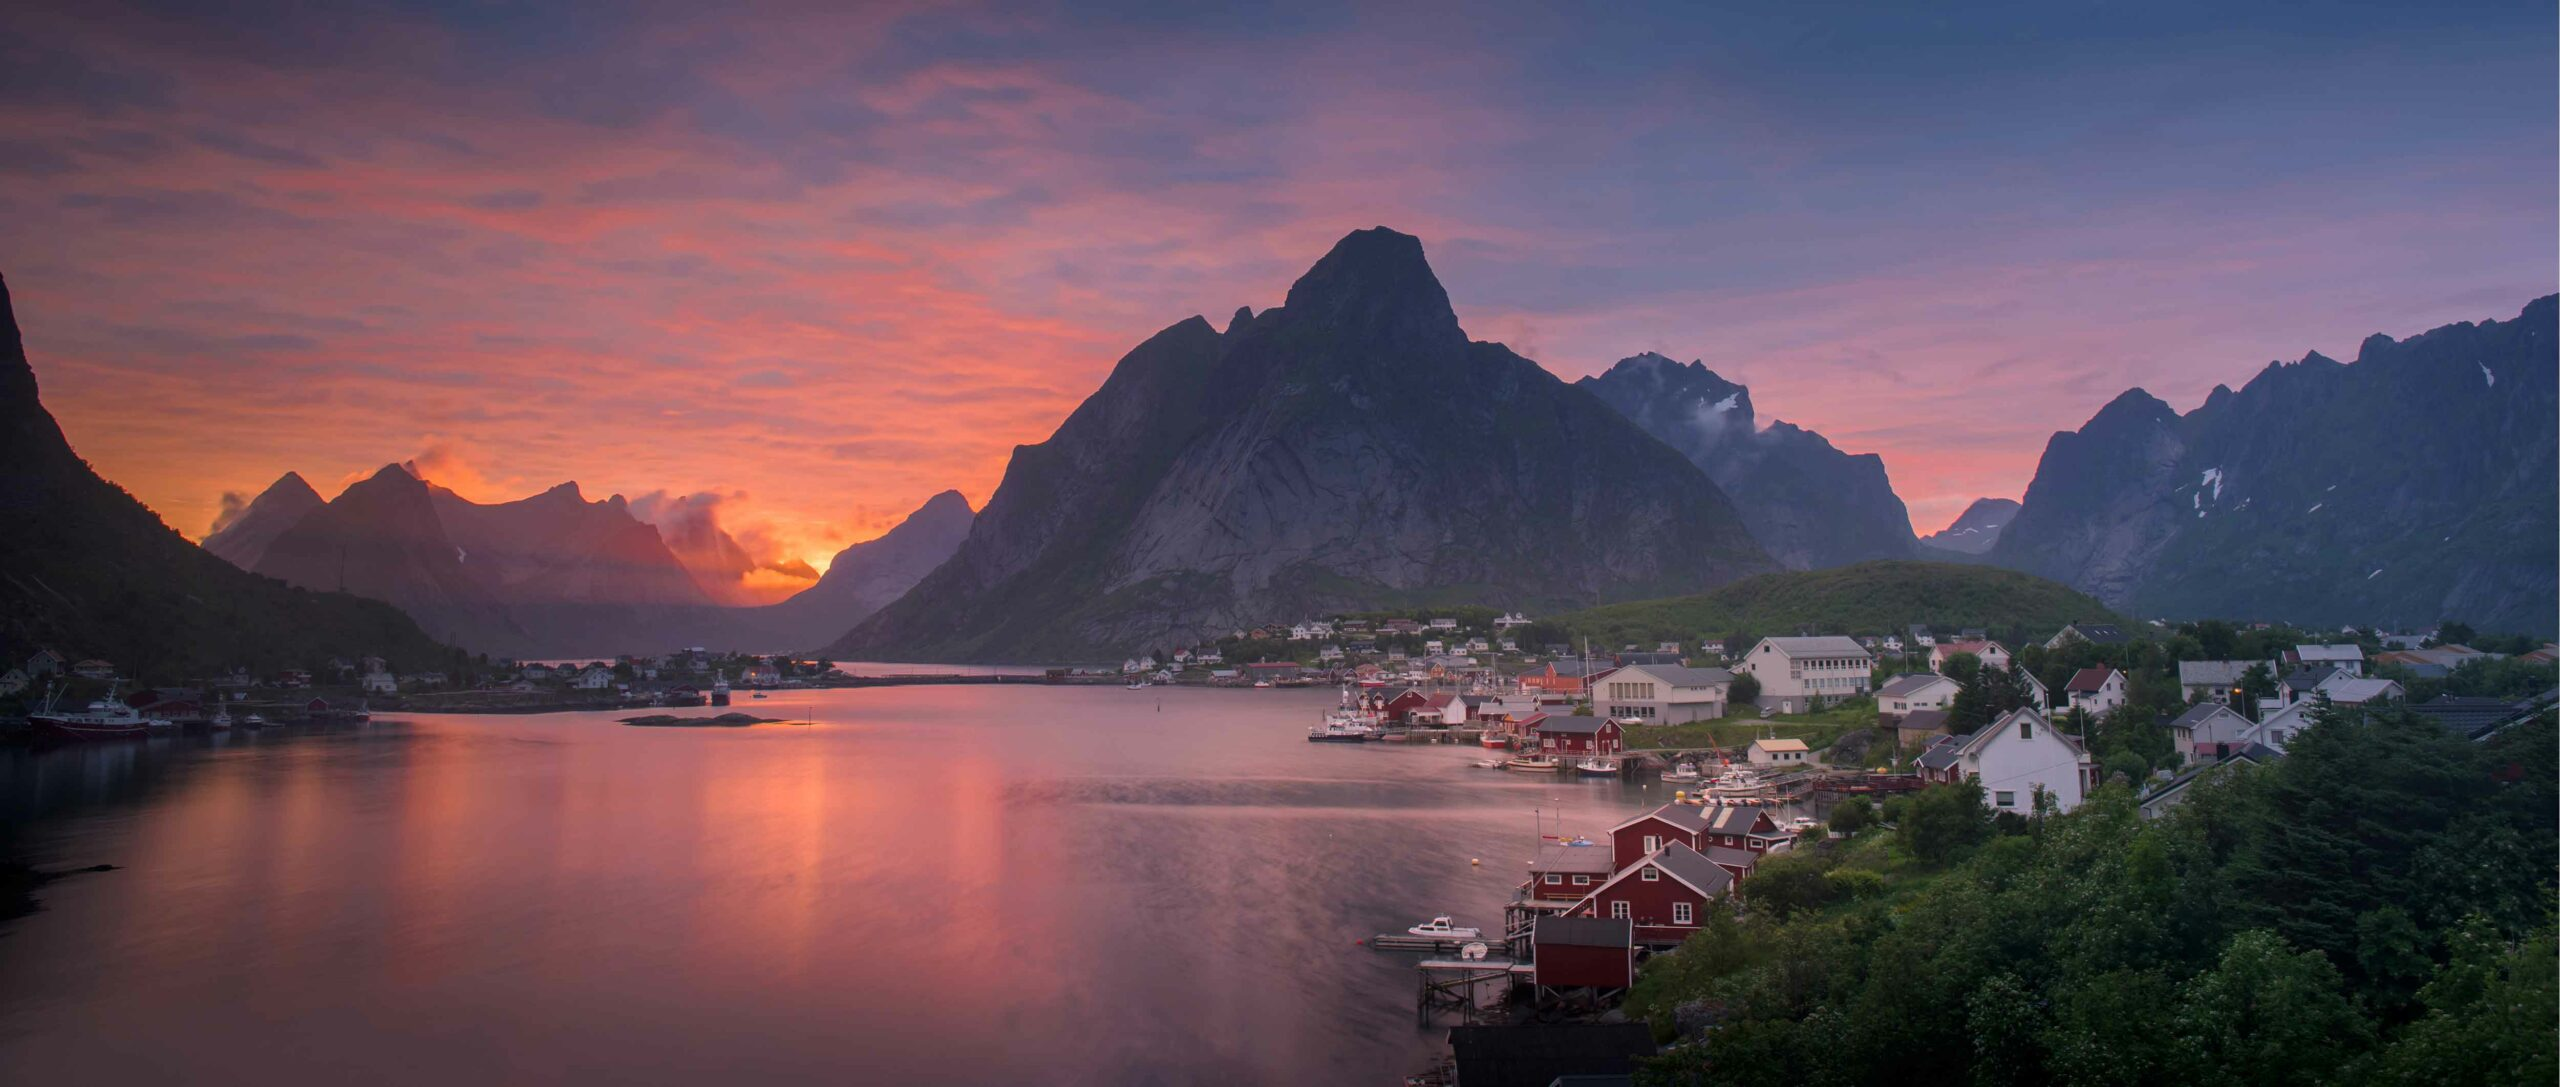 Norway Cruise Stop: Sunset over the Lofoten Islands